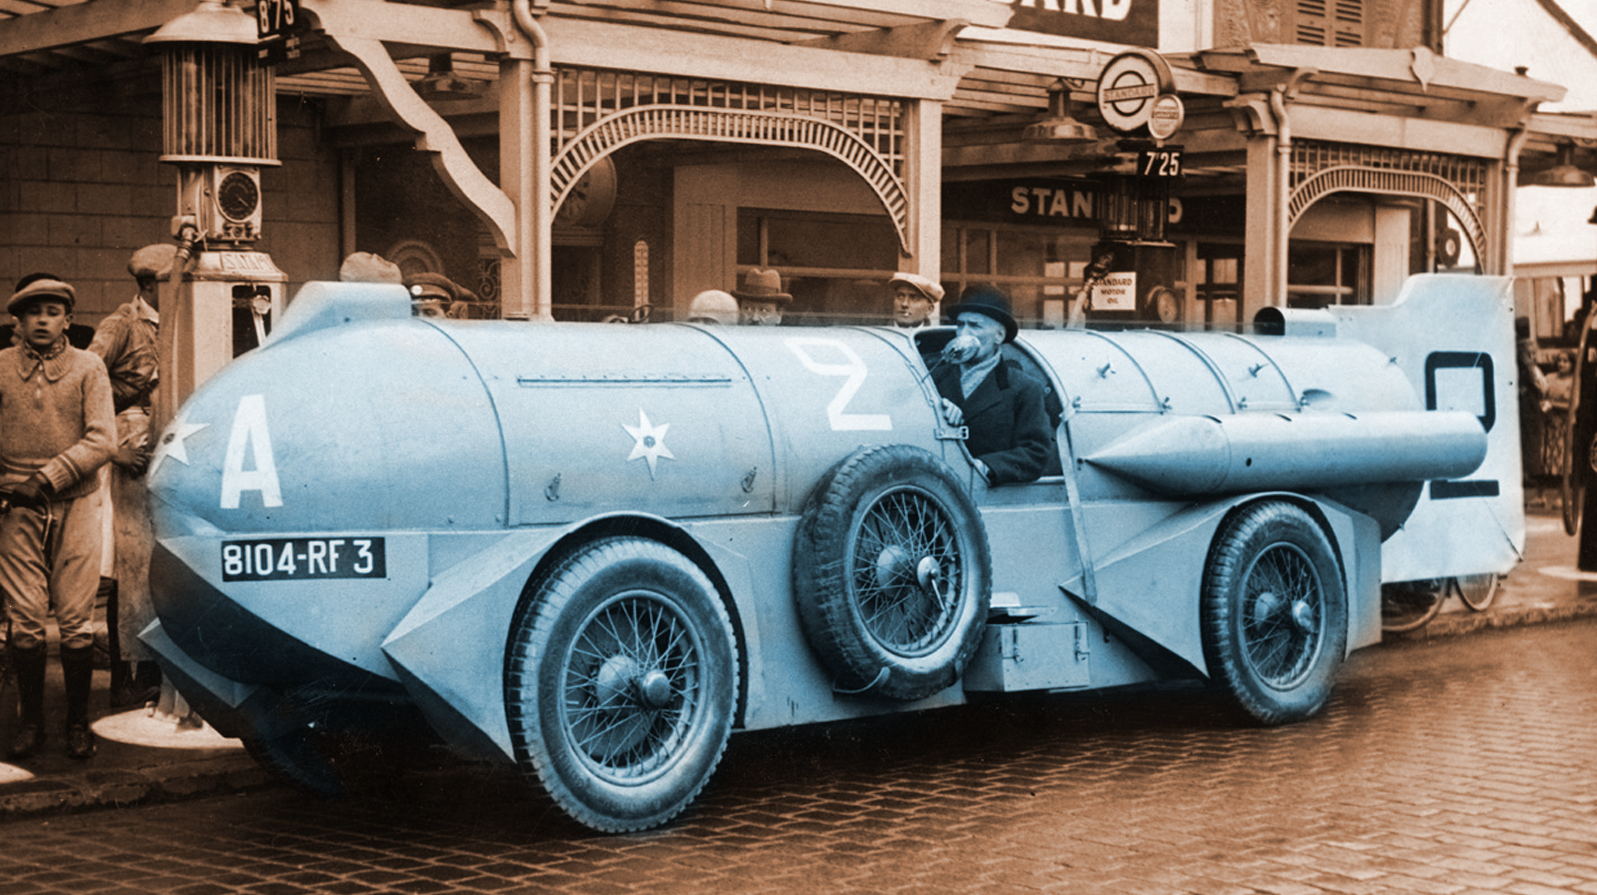 It's Time To Learn About The Mystery Of The Insane Locomotive-Like 1932 Stapp Land Speed Record Car